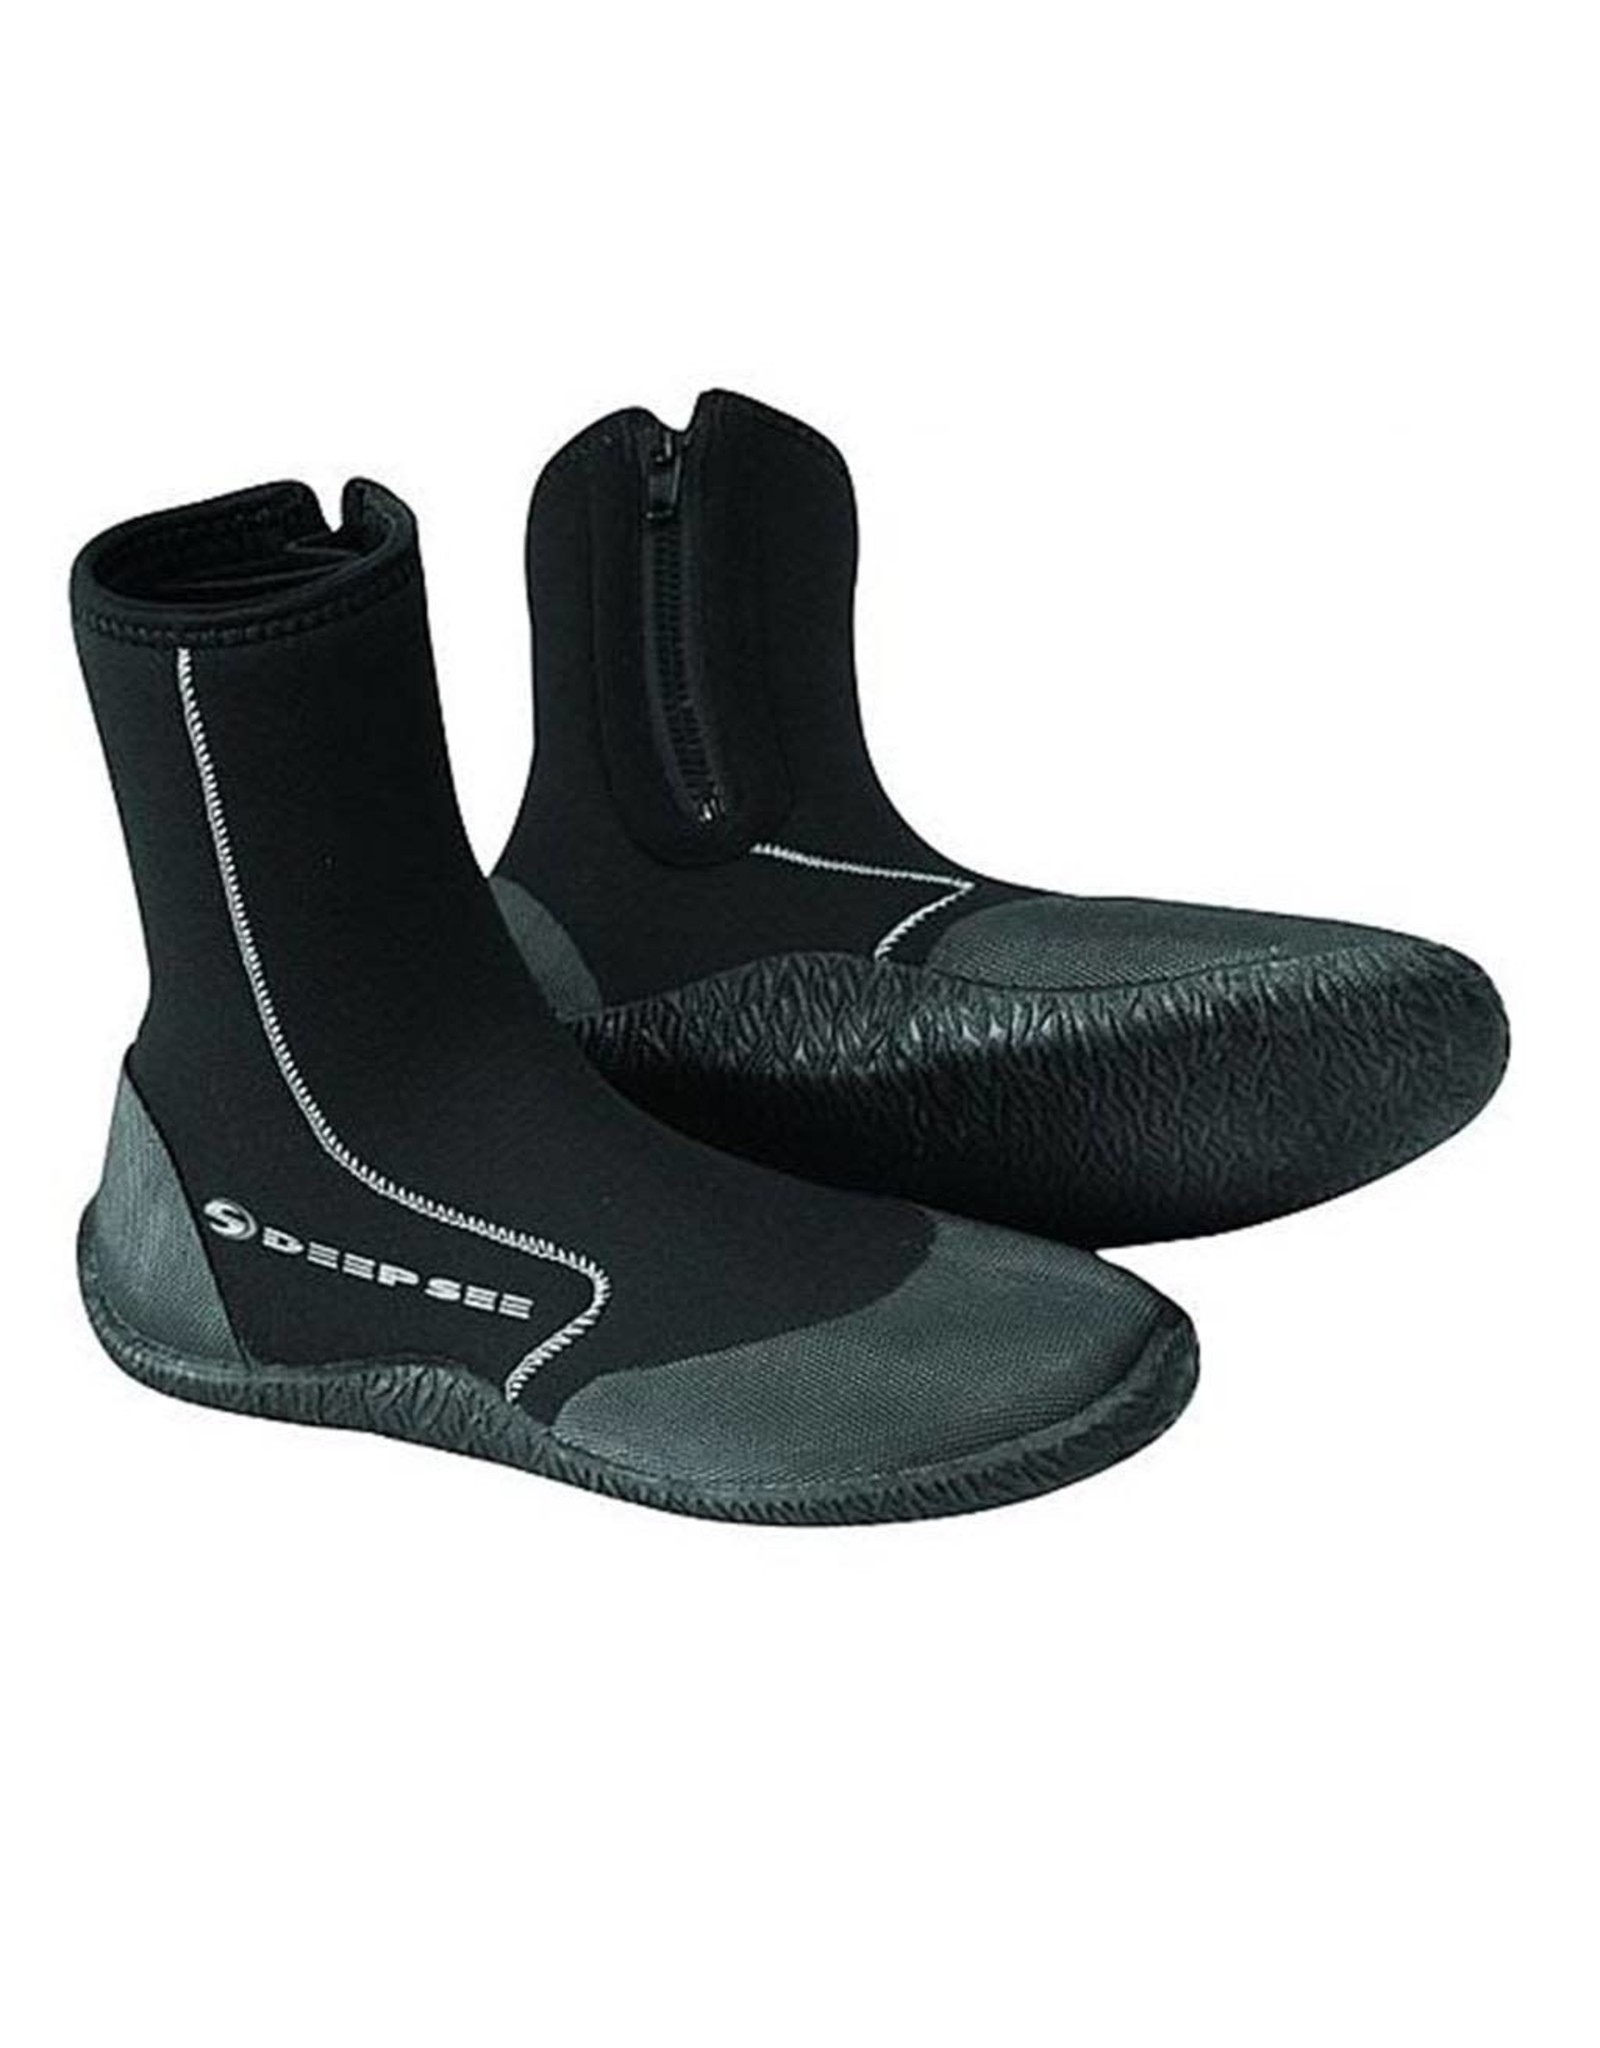 Aqua Lung Deep See Boot Atlantis neoprene gr 05 (LIQUIDATION)